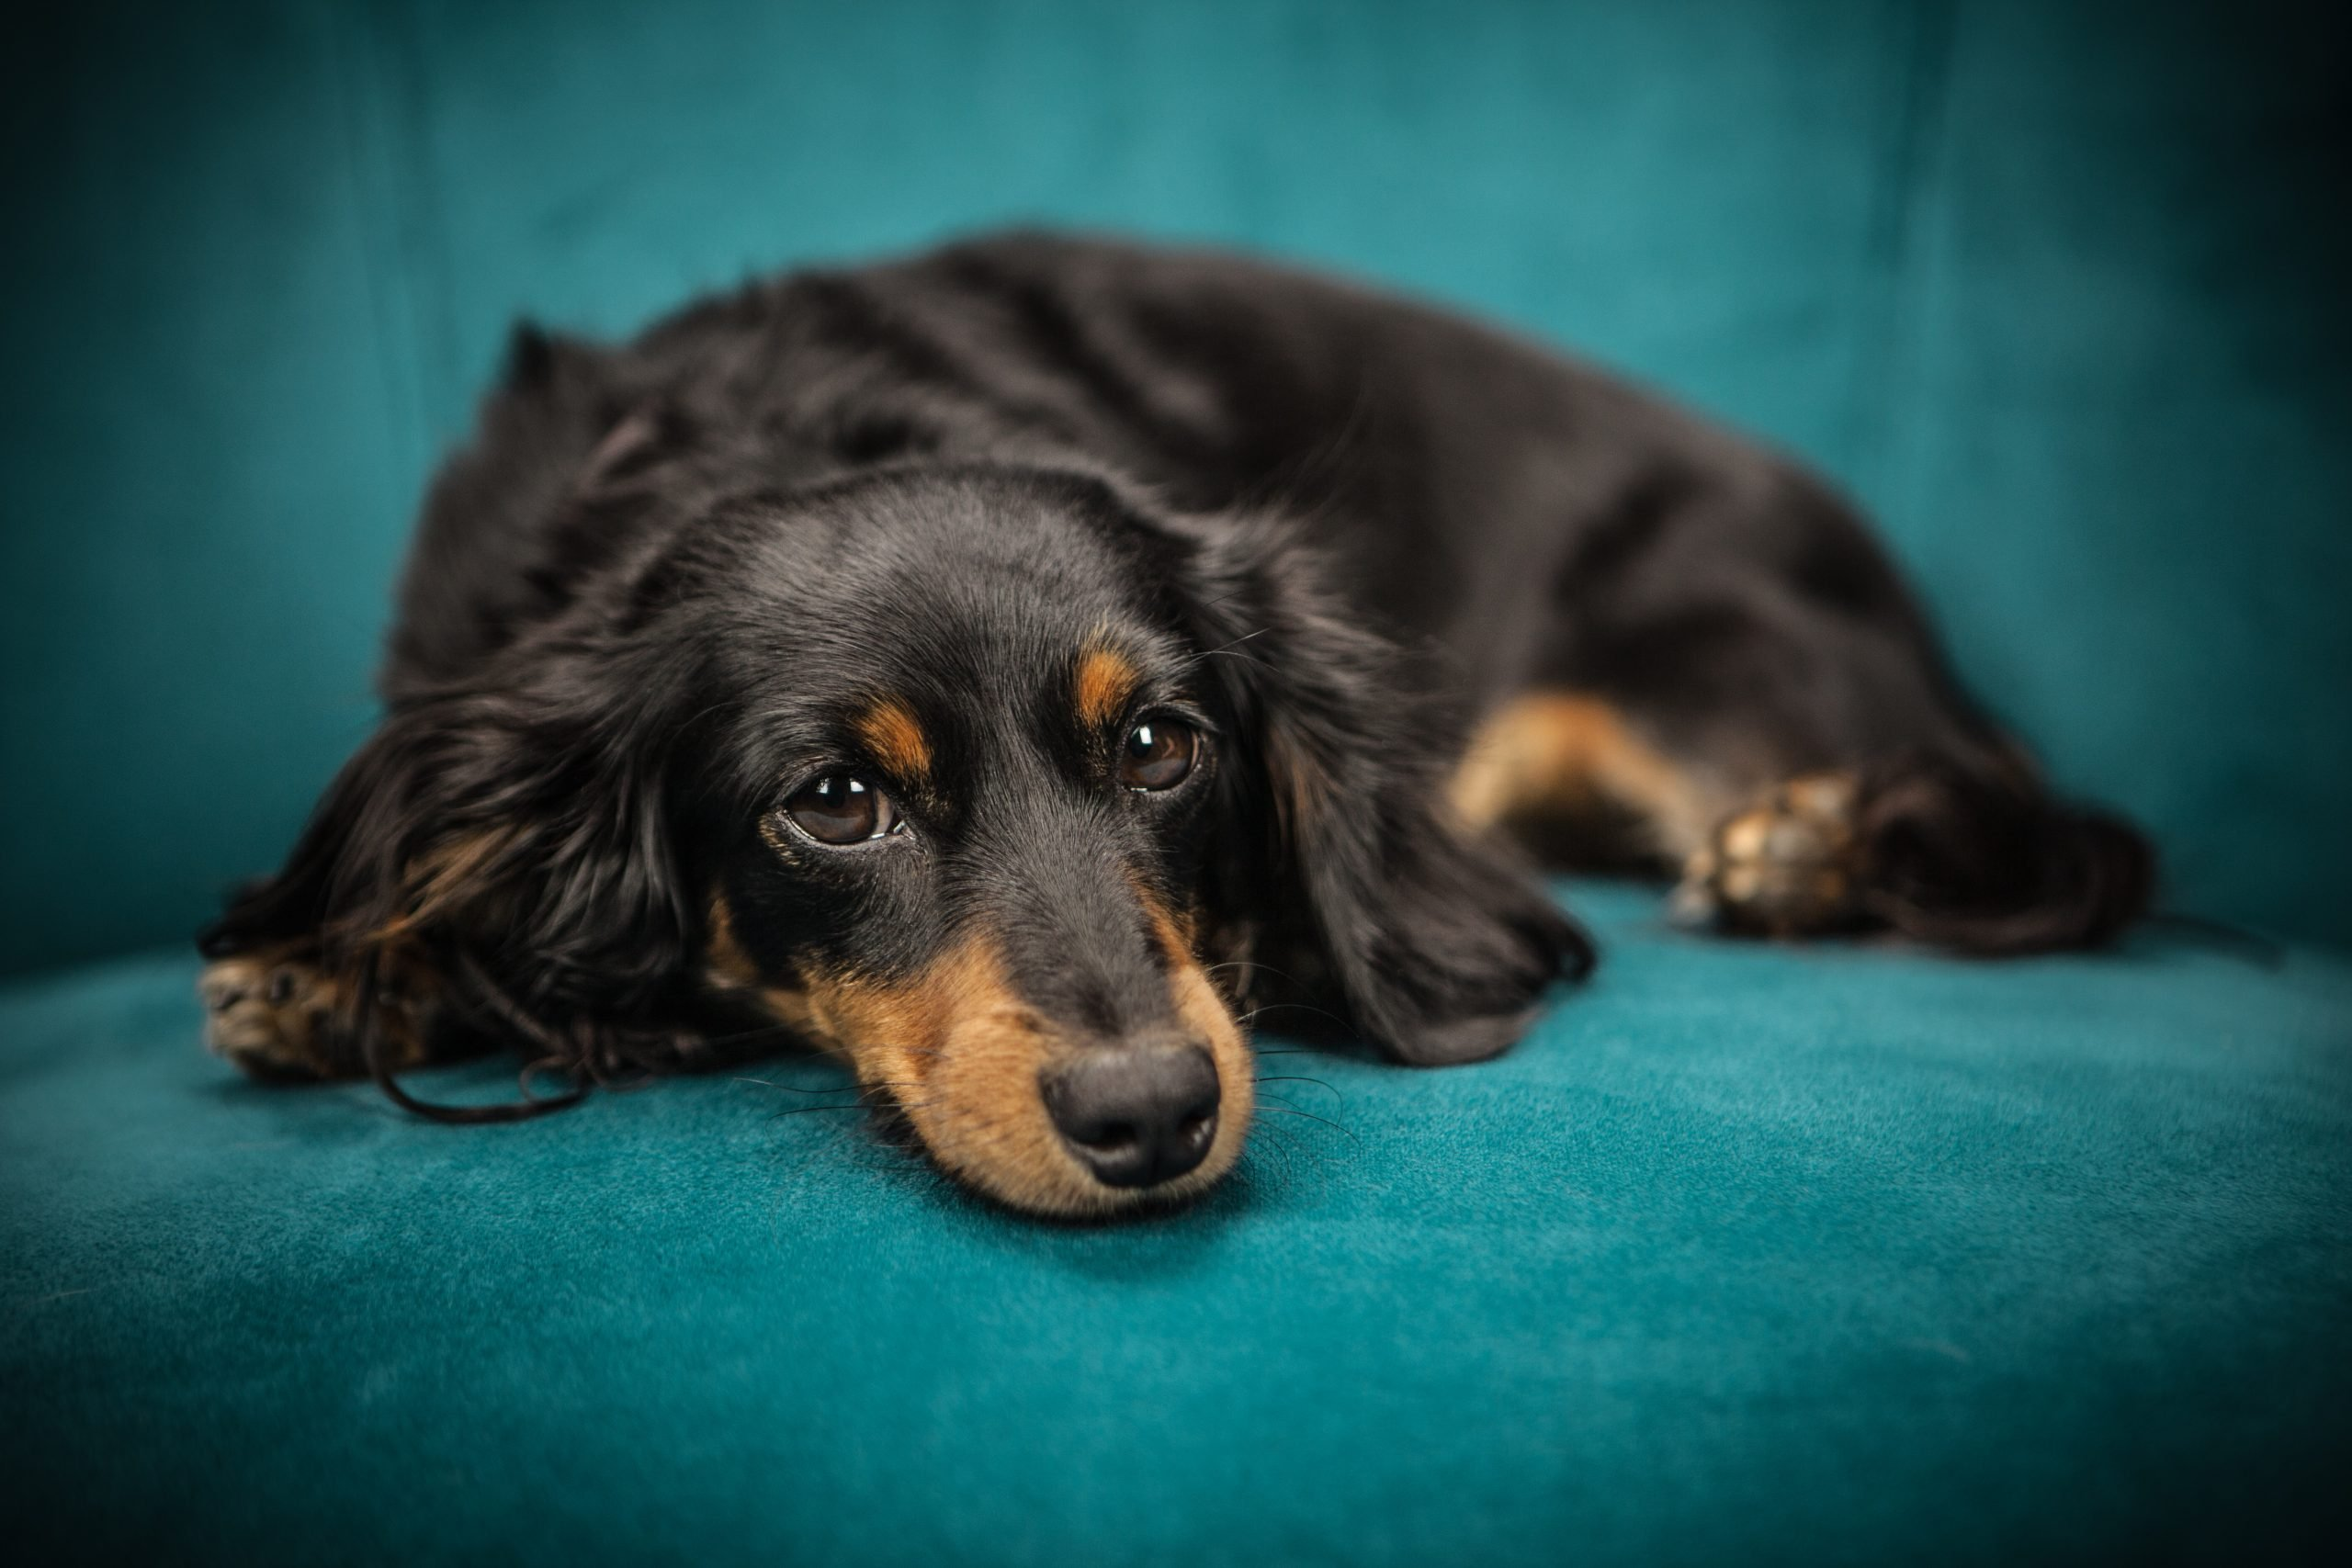 black and tan dog on blue couch